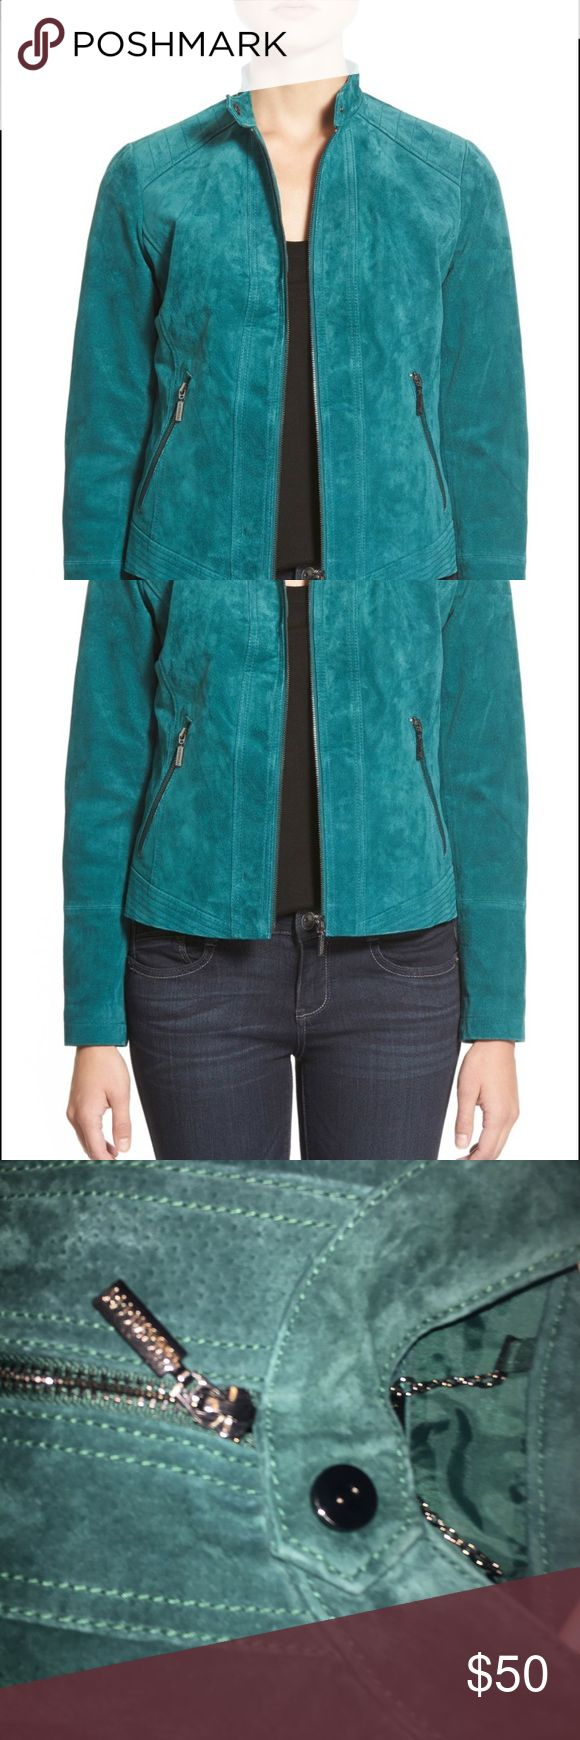 Bernardo Jacket Moto-style jacket, including quilted shoulder panels and trapunto-stitched hem panels, define a fitted jacket cut from soft and supple teal suede. Stand collar, Long sleeves, Front zip closure, and is dry clean only! Fits true to size! Bernardo Jackets & Coats